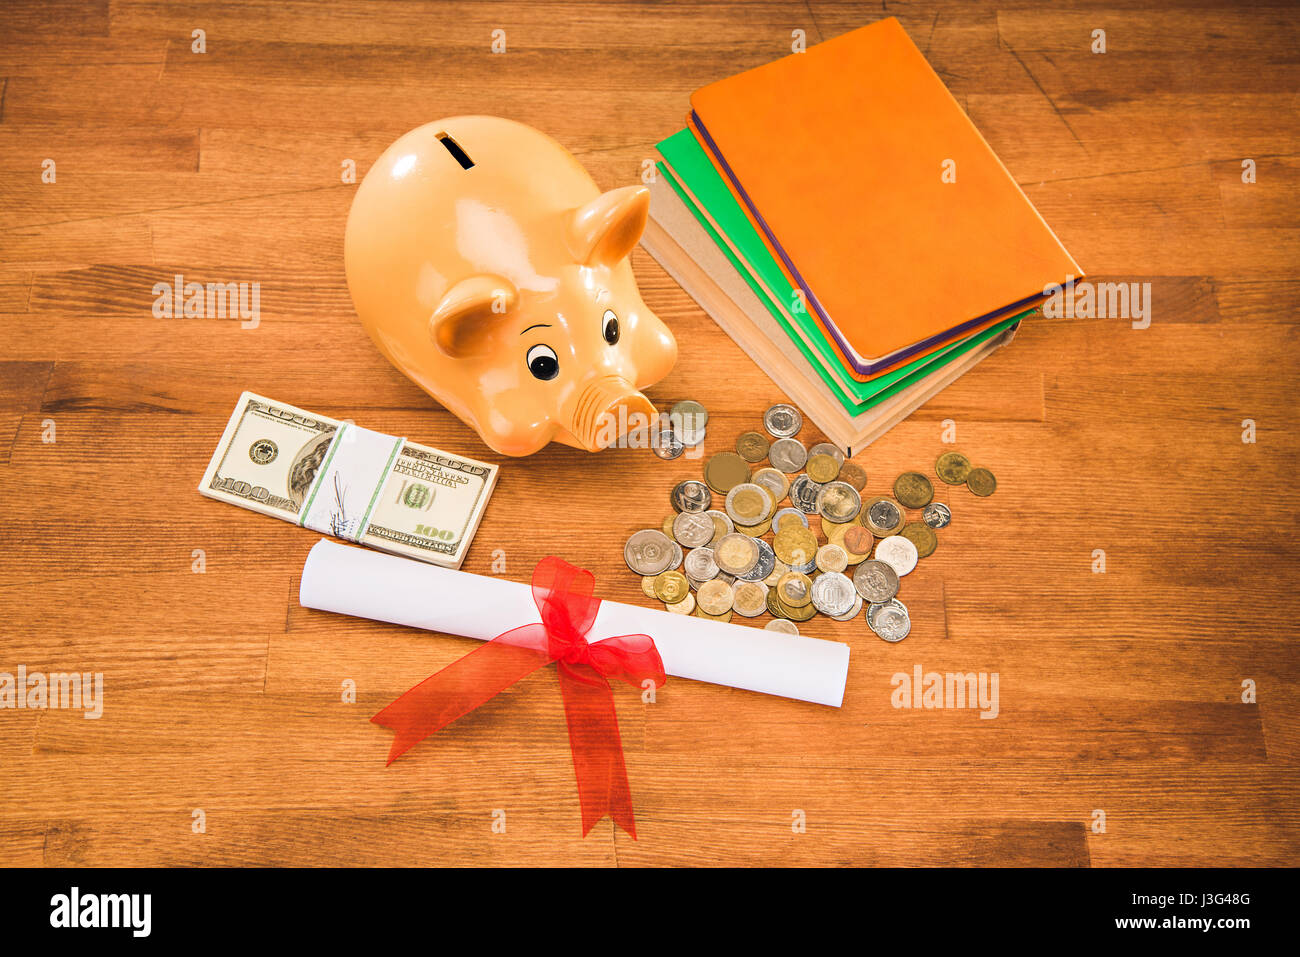 diploma, books and piggy bank with coins and dollars on wooden tabletop, education concept - Stock Image